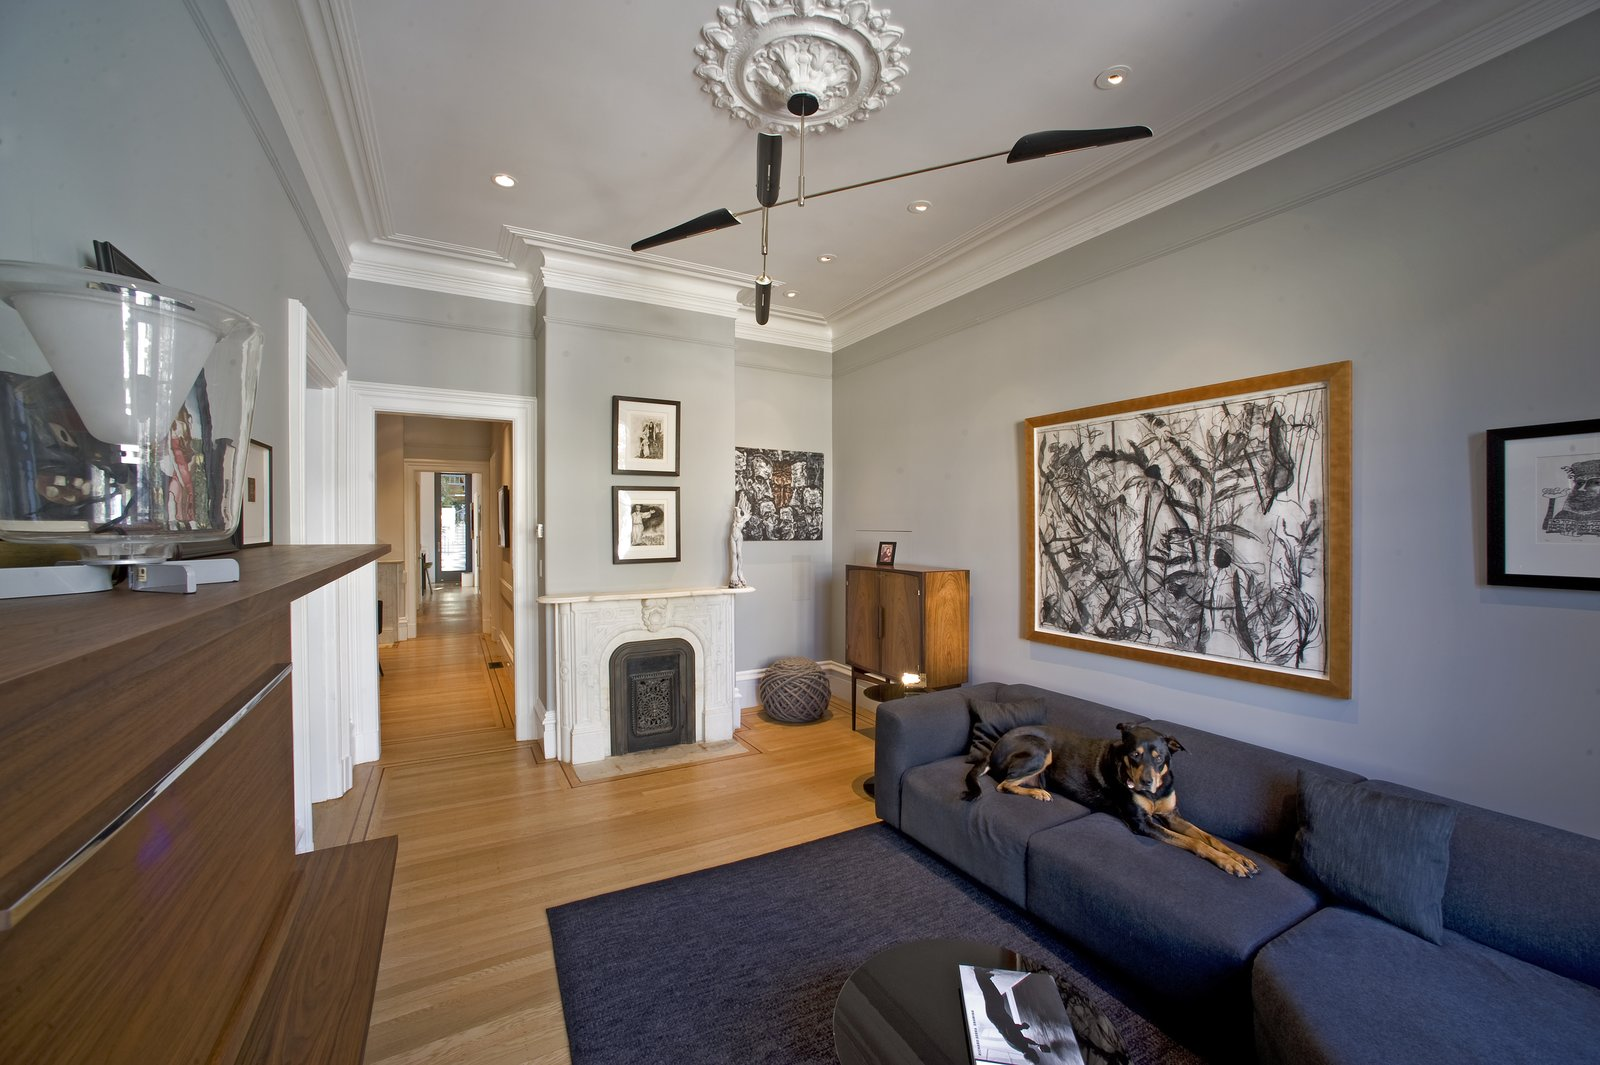 35 Liberty by Todd Davis Architecture